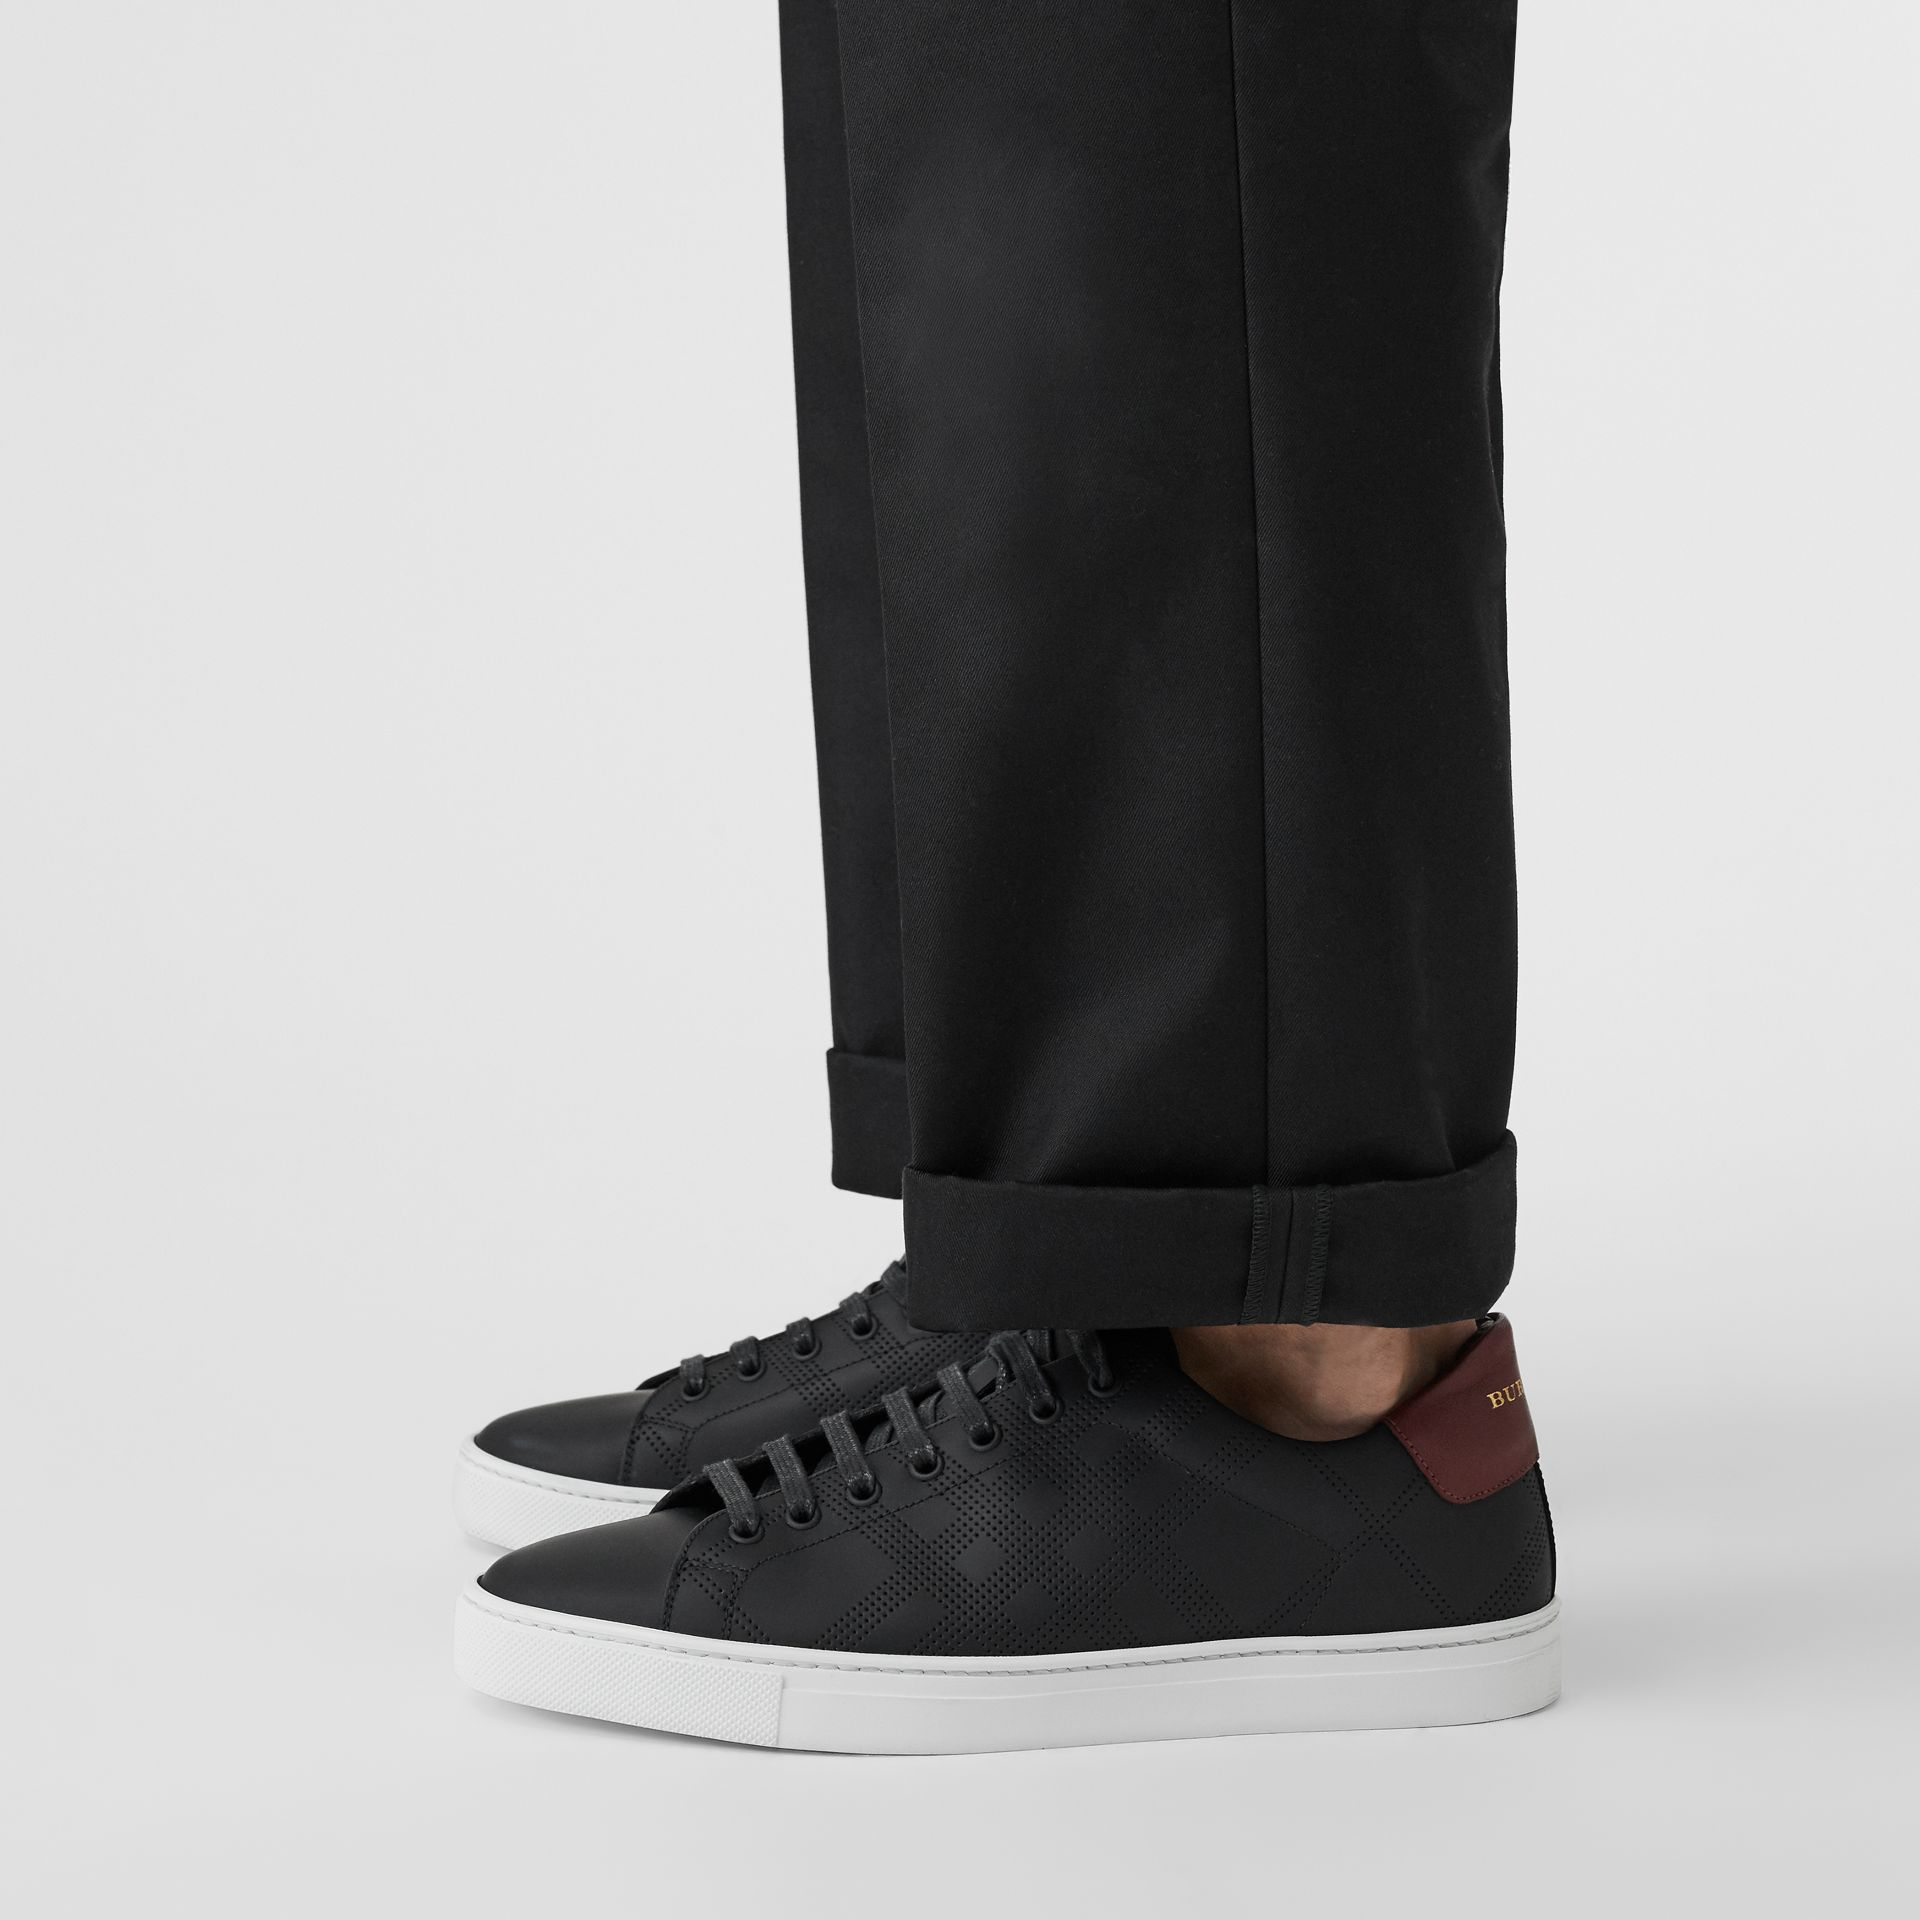 Perforated Check Leather Sneakers in Black - Men | Burberry United States - gallery image 2